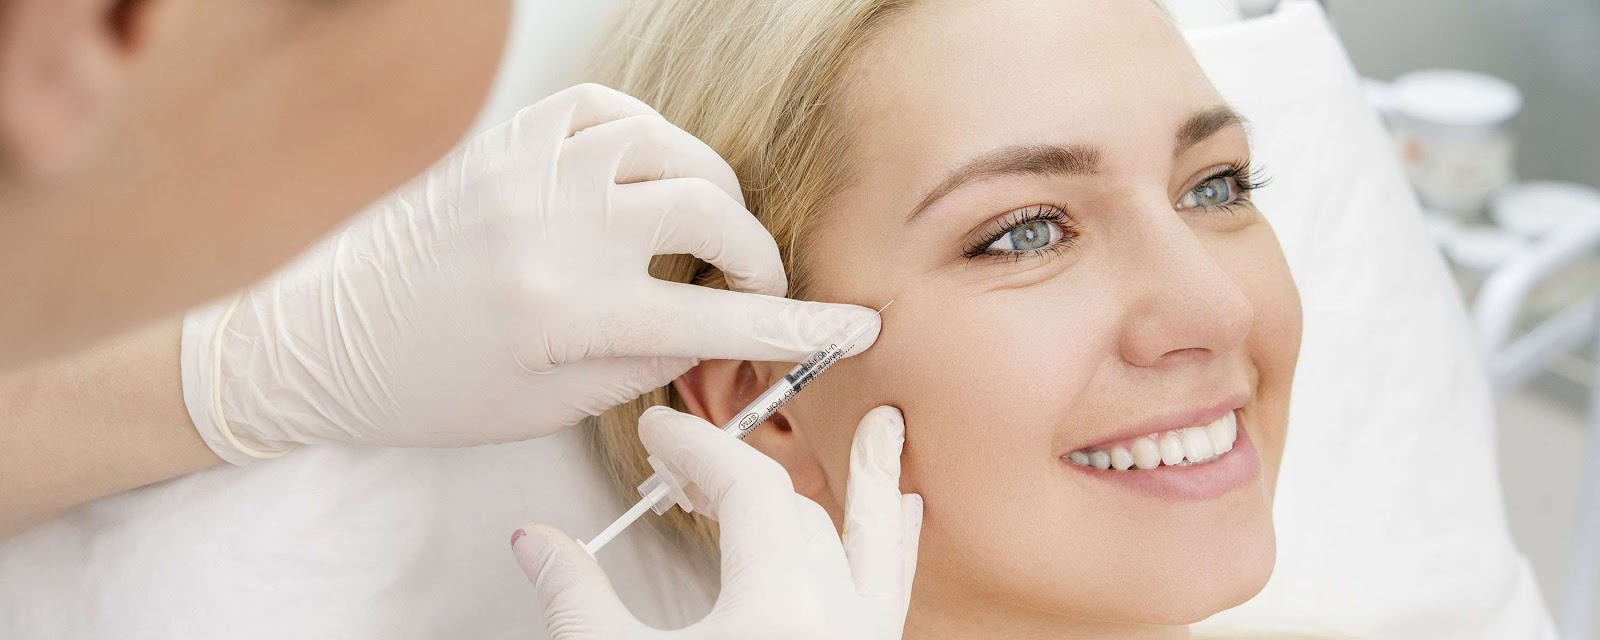 Professional Botox administration in Marylebone